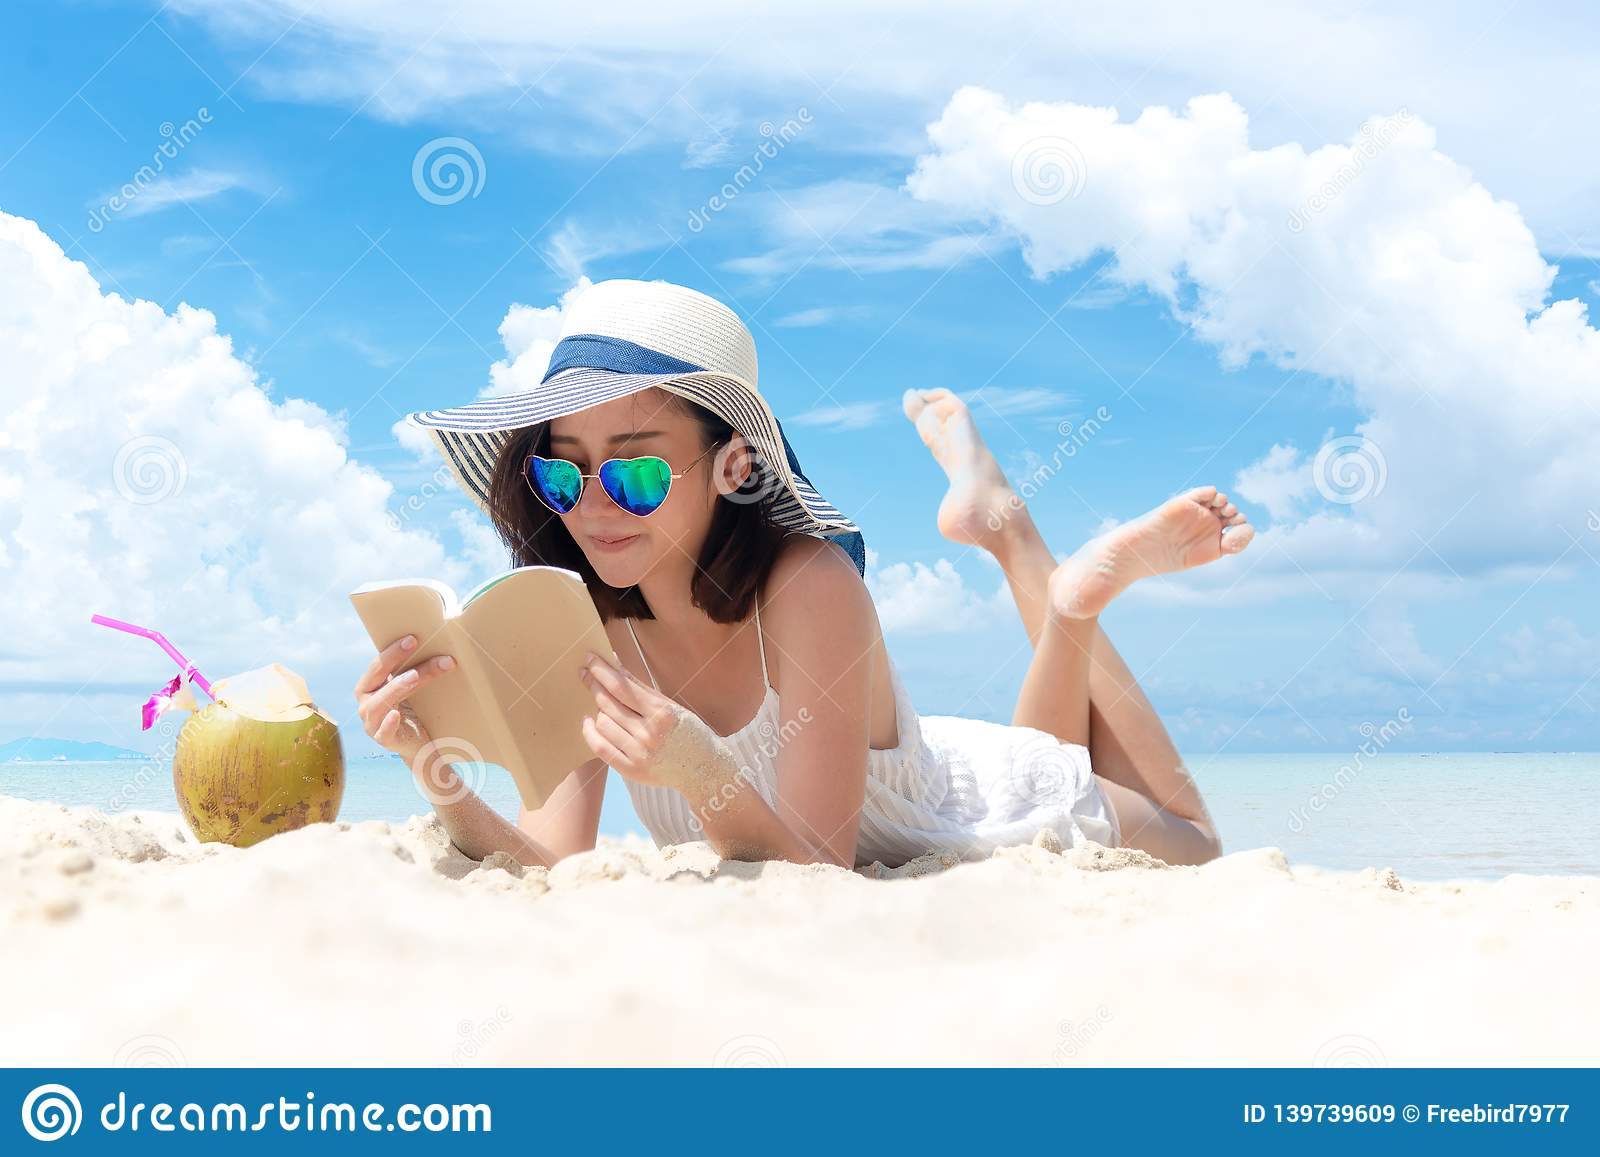 Summer Vacation. Smelling asian women relaxing and reading book on the beach, so happy and luxury in holiday summer, outdoors blue